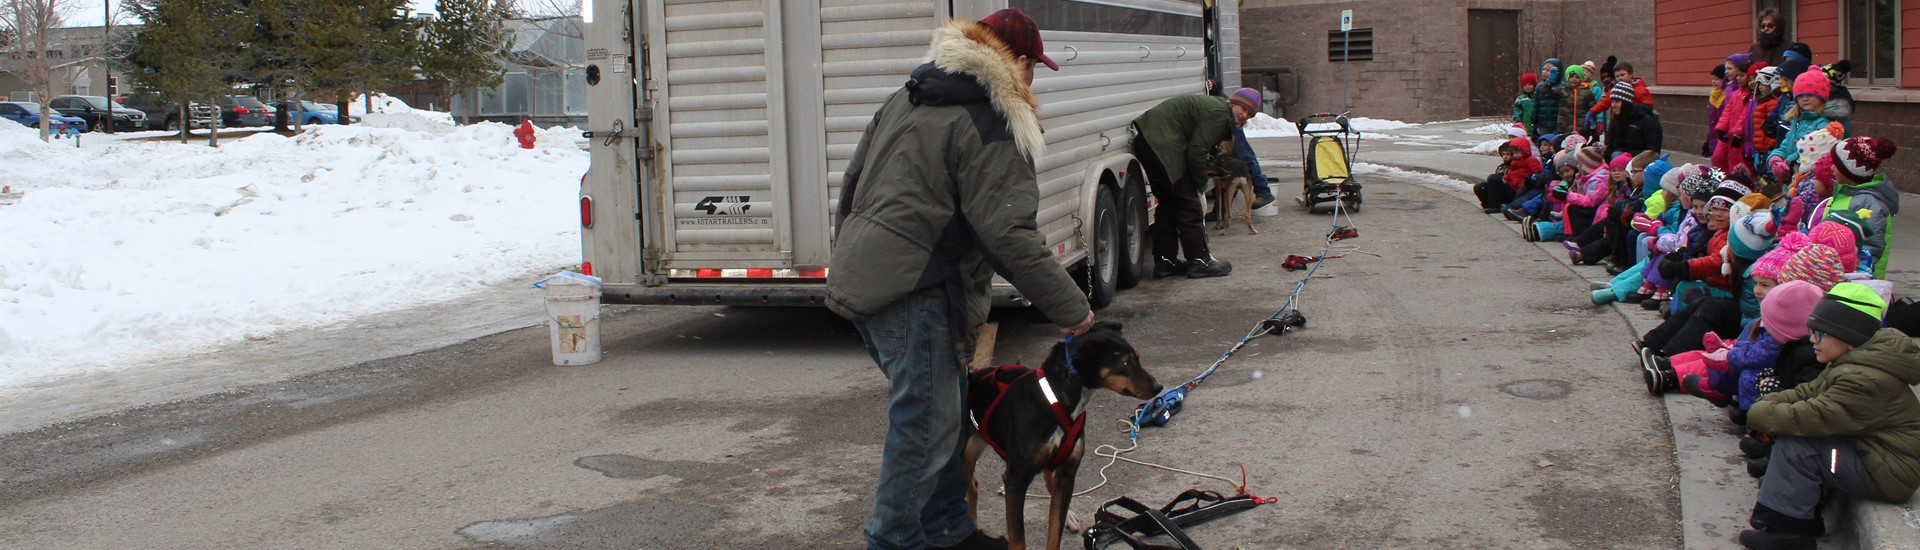 Pedigree Stage Stop mushers and dogs visit JES